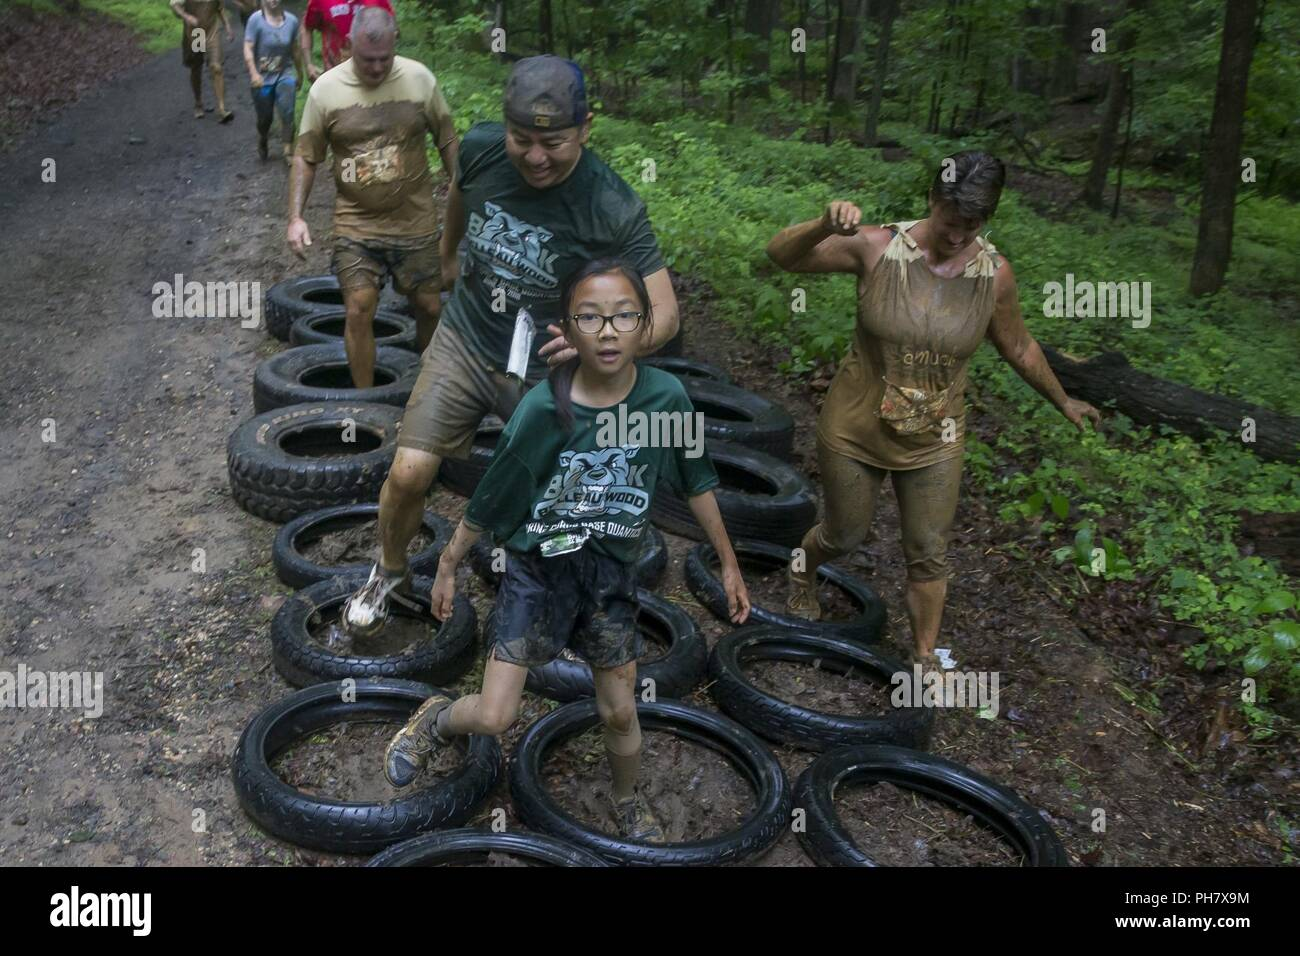 Participants navigate a tire obstacle during the annual Marine Corps Marathon (MCM) Run Amuck at Marine Corps Base Quantico, Va., June 23, 2018. The Run Amuck is the MCM's messiest mud and obstacle course consisting of a four-mile trail with 21 challenges to include body weight exercises, rope climbs, and mud pits. - Stock Image